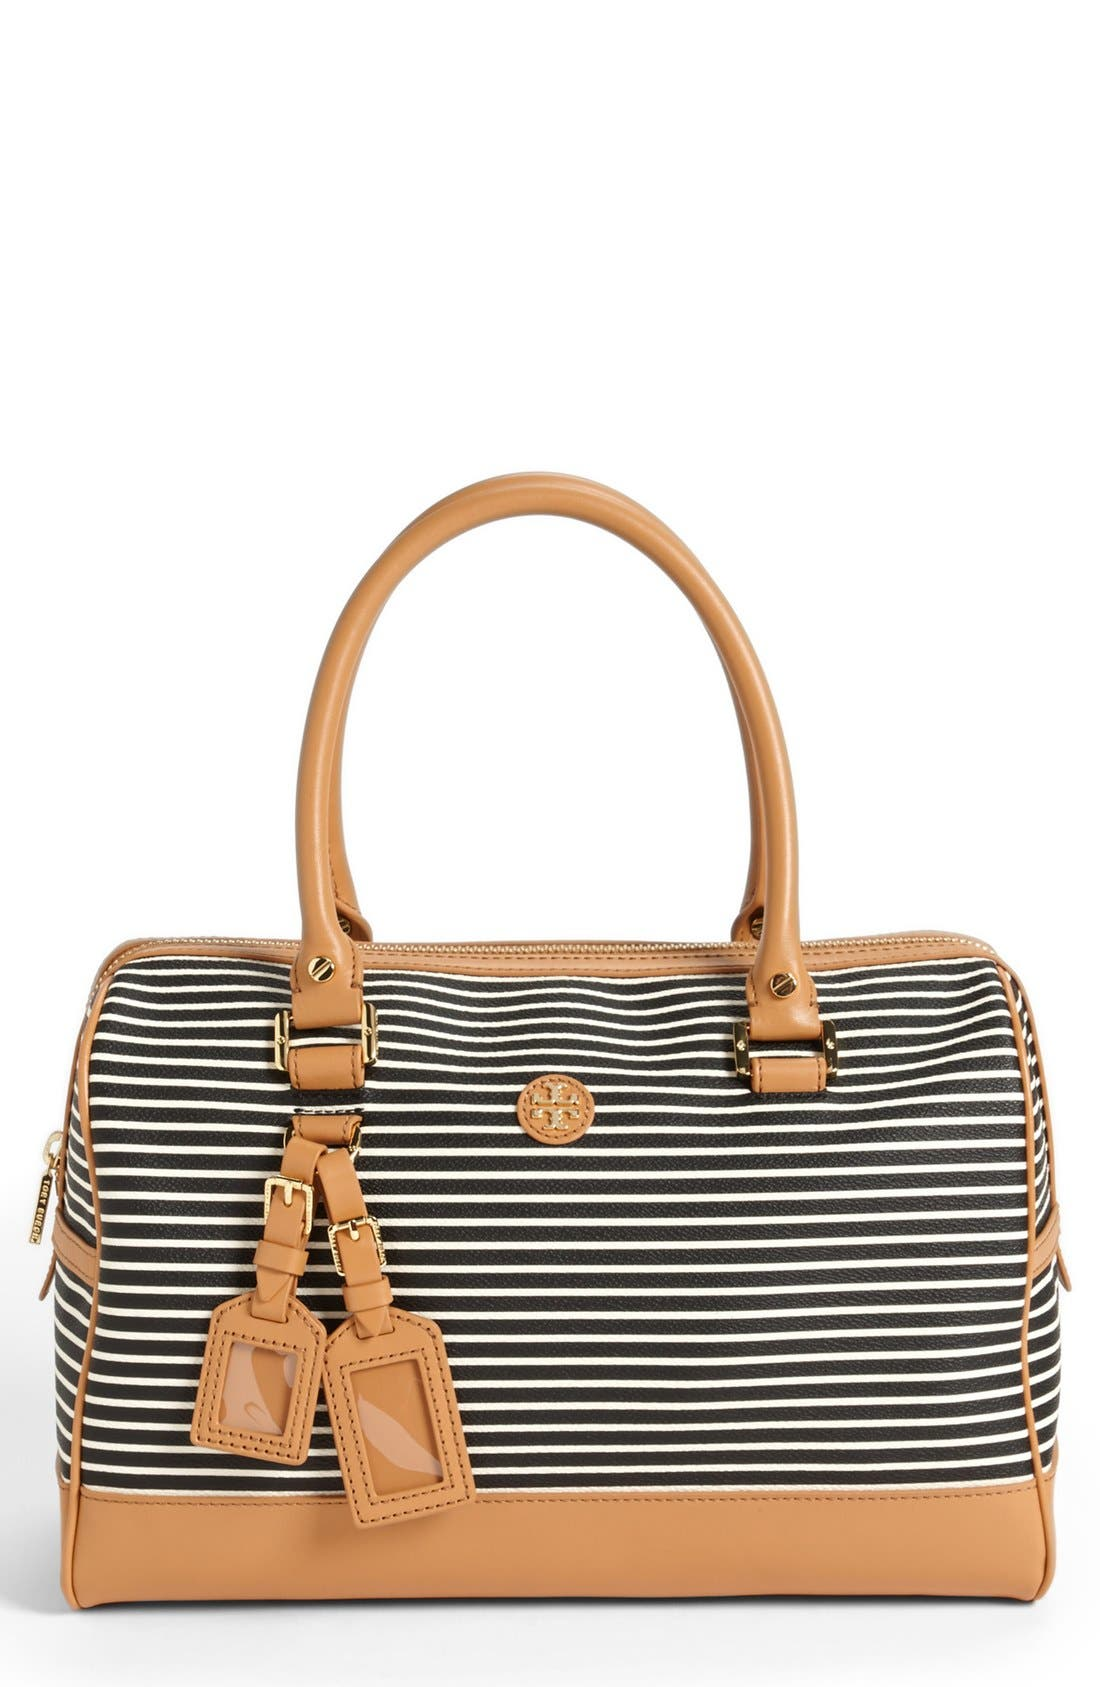 Alternate Image 1 Selected - Tory Burch 'Viva' Satchel